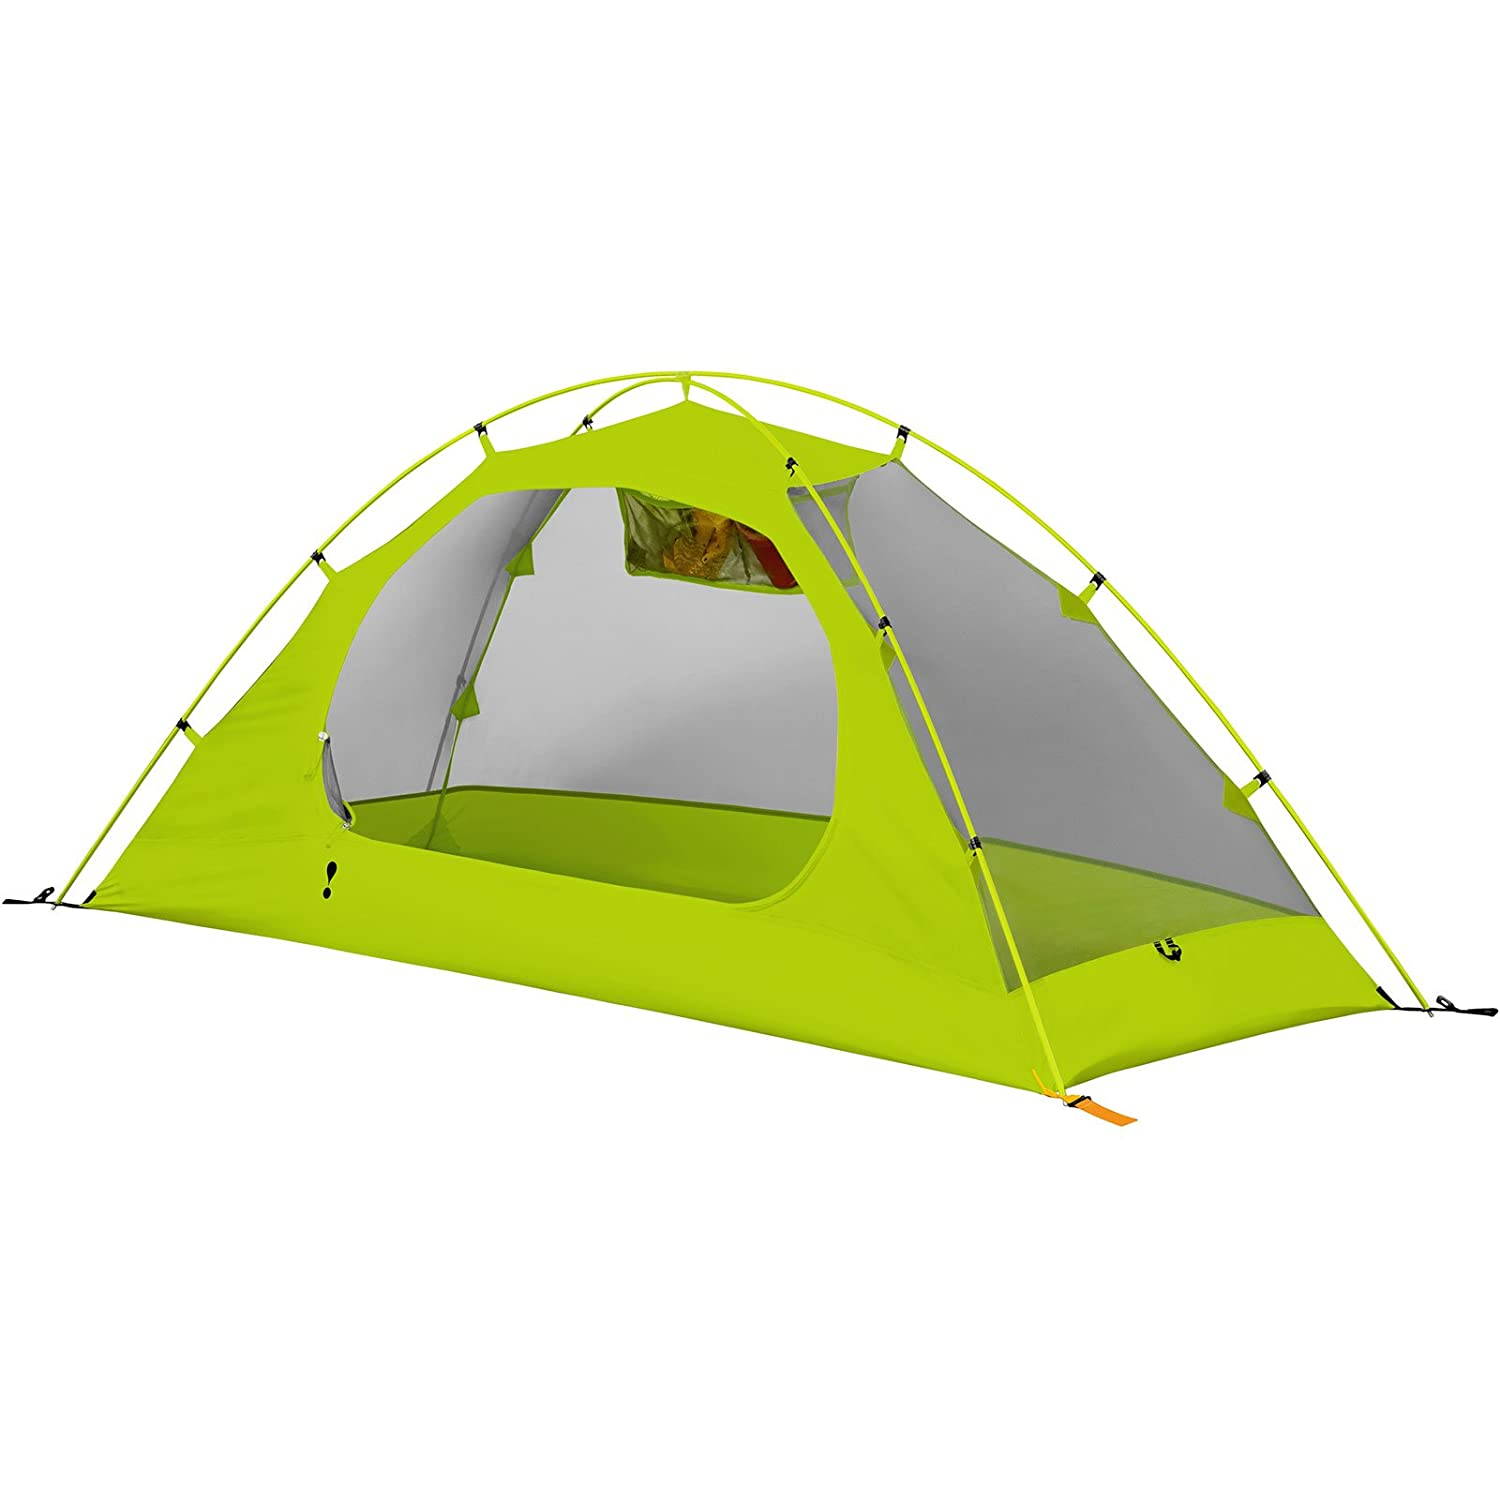 Amazon.com  Eureka Midori Solo - 1 Person Tent  Backpacking Tents  Sports u0026 Outdoors  sc 1 st  Amazon.com : eurika tents - memphite.com